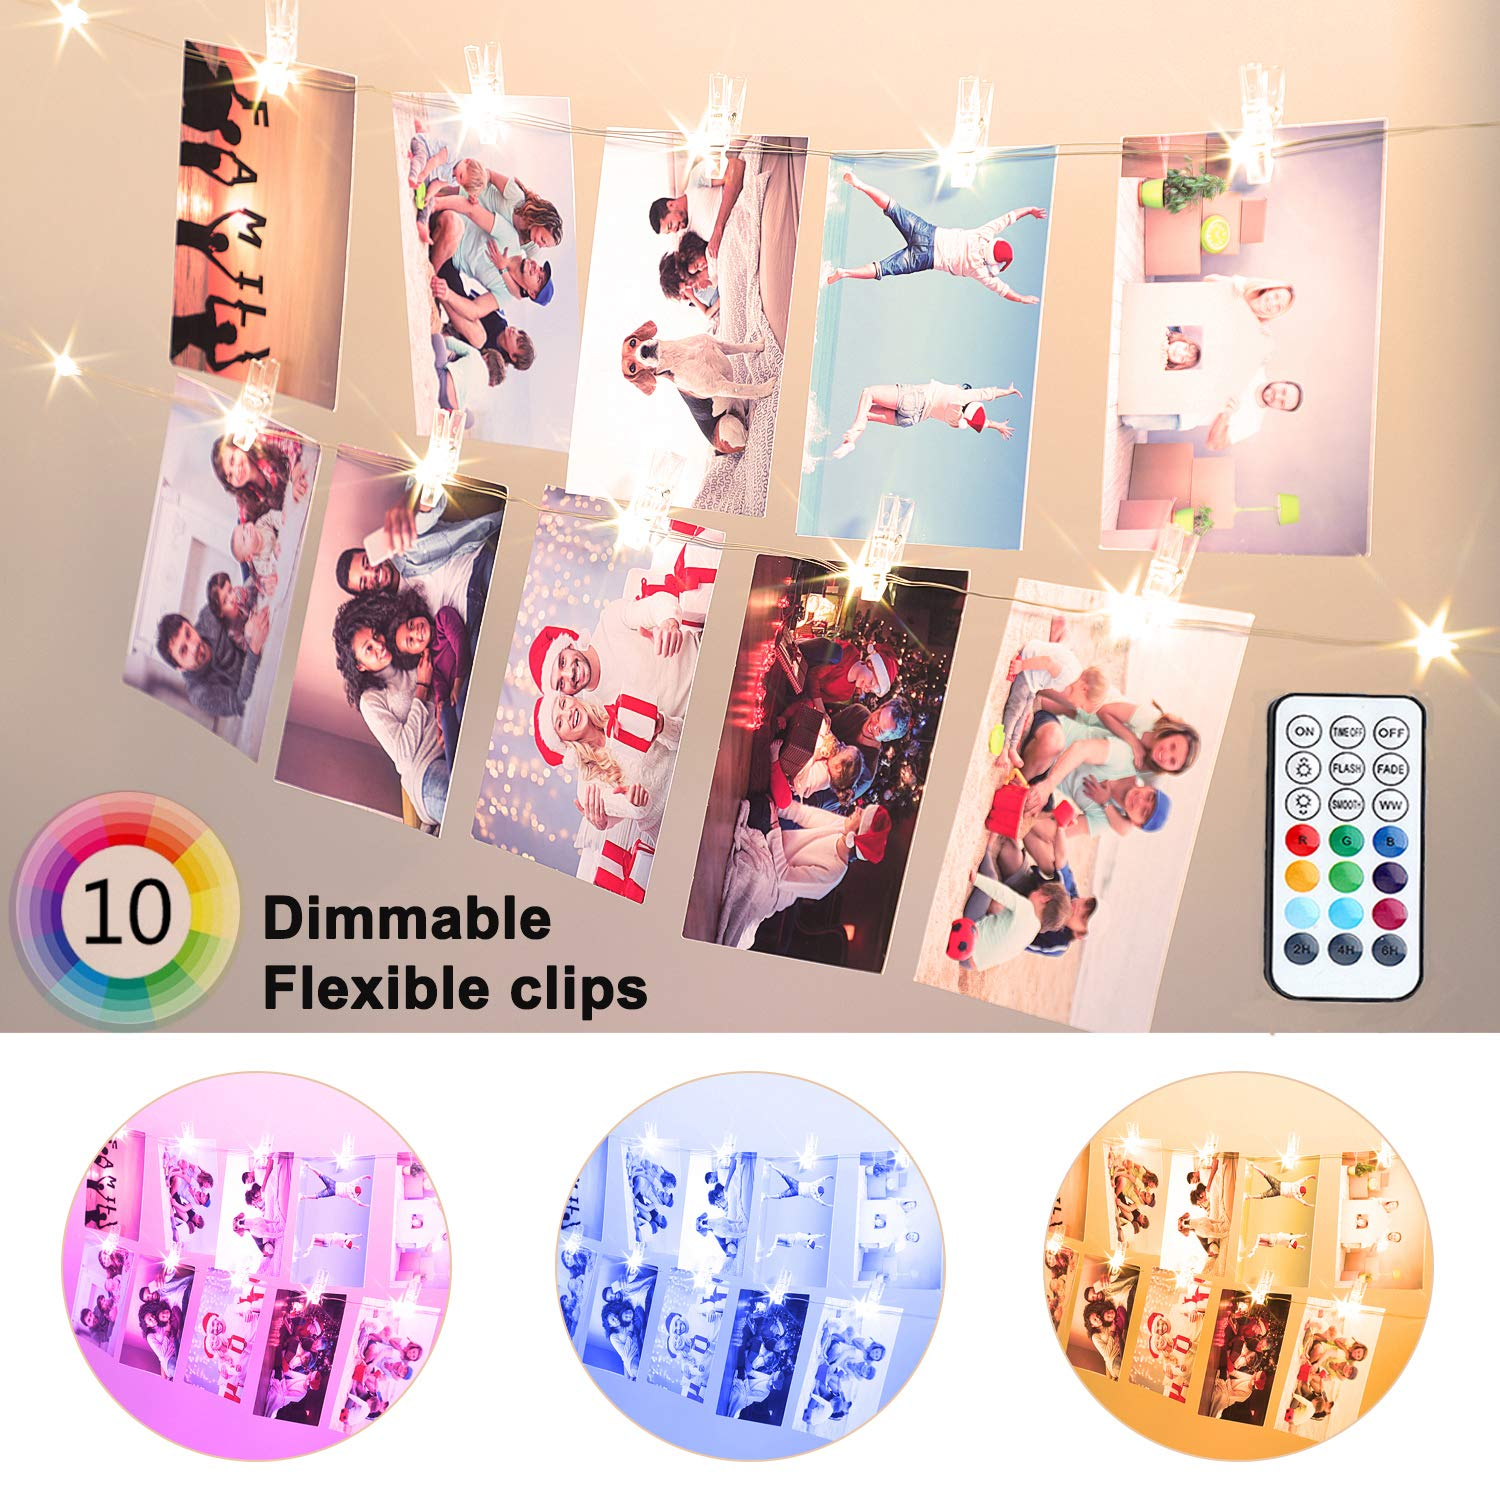 20 LED Photo Clip String Lights, 6.56ft 10 Color Changing Battery Operated & USB Fairy Lights with Remote Timer for Hanging Photo Banner, Cards, Memos, Picture Holder, Indoor Ambiance Wall Decor